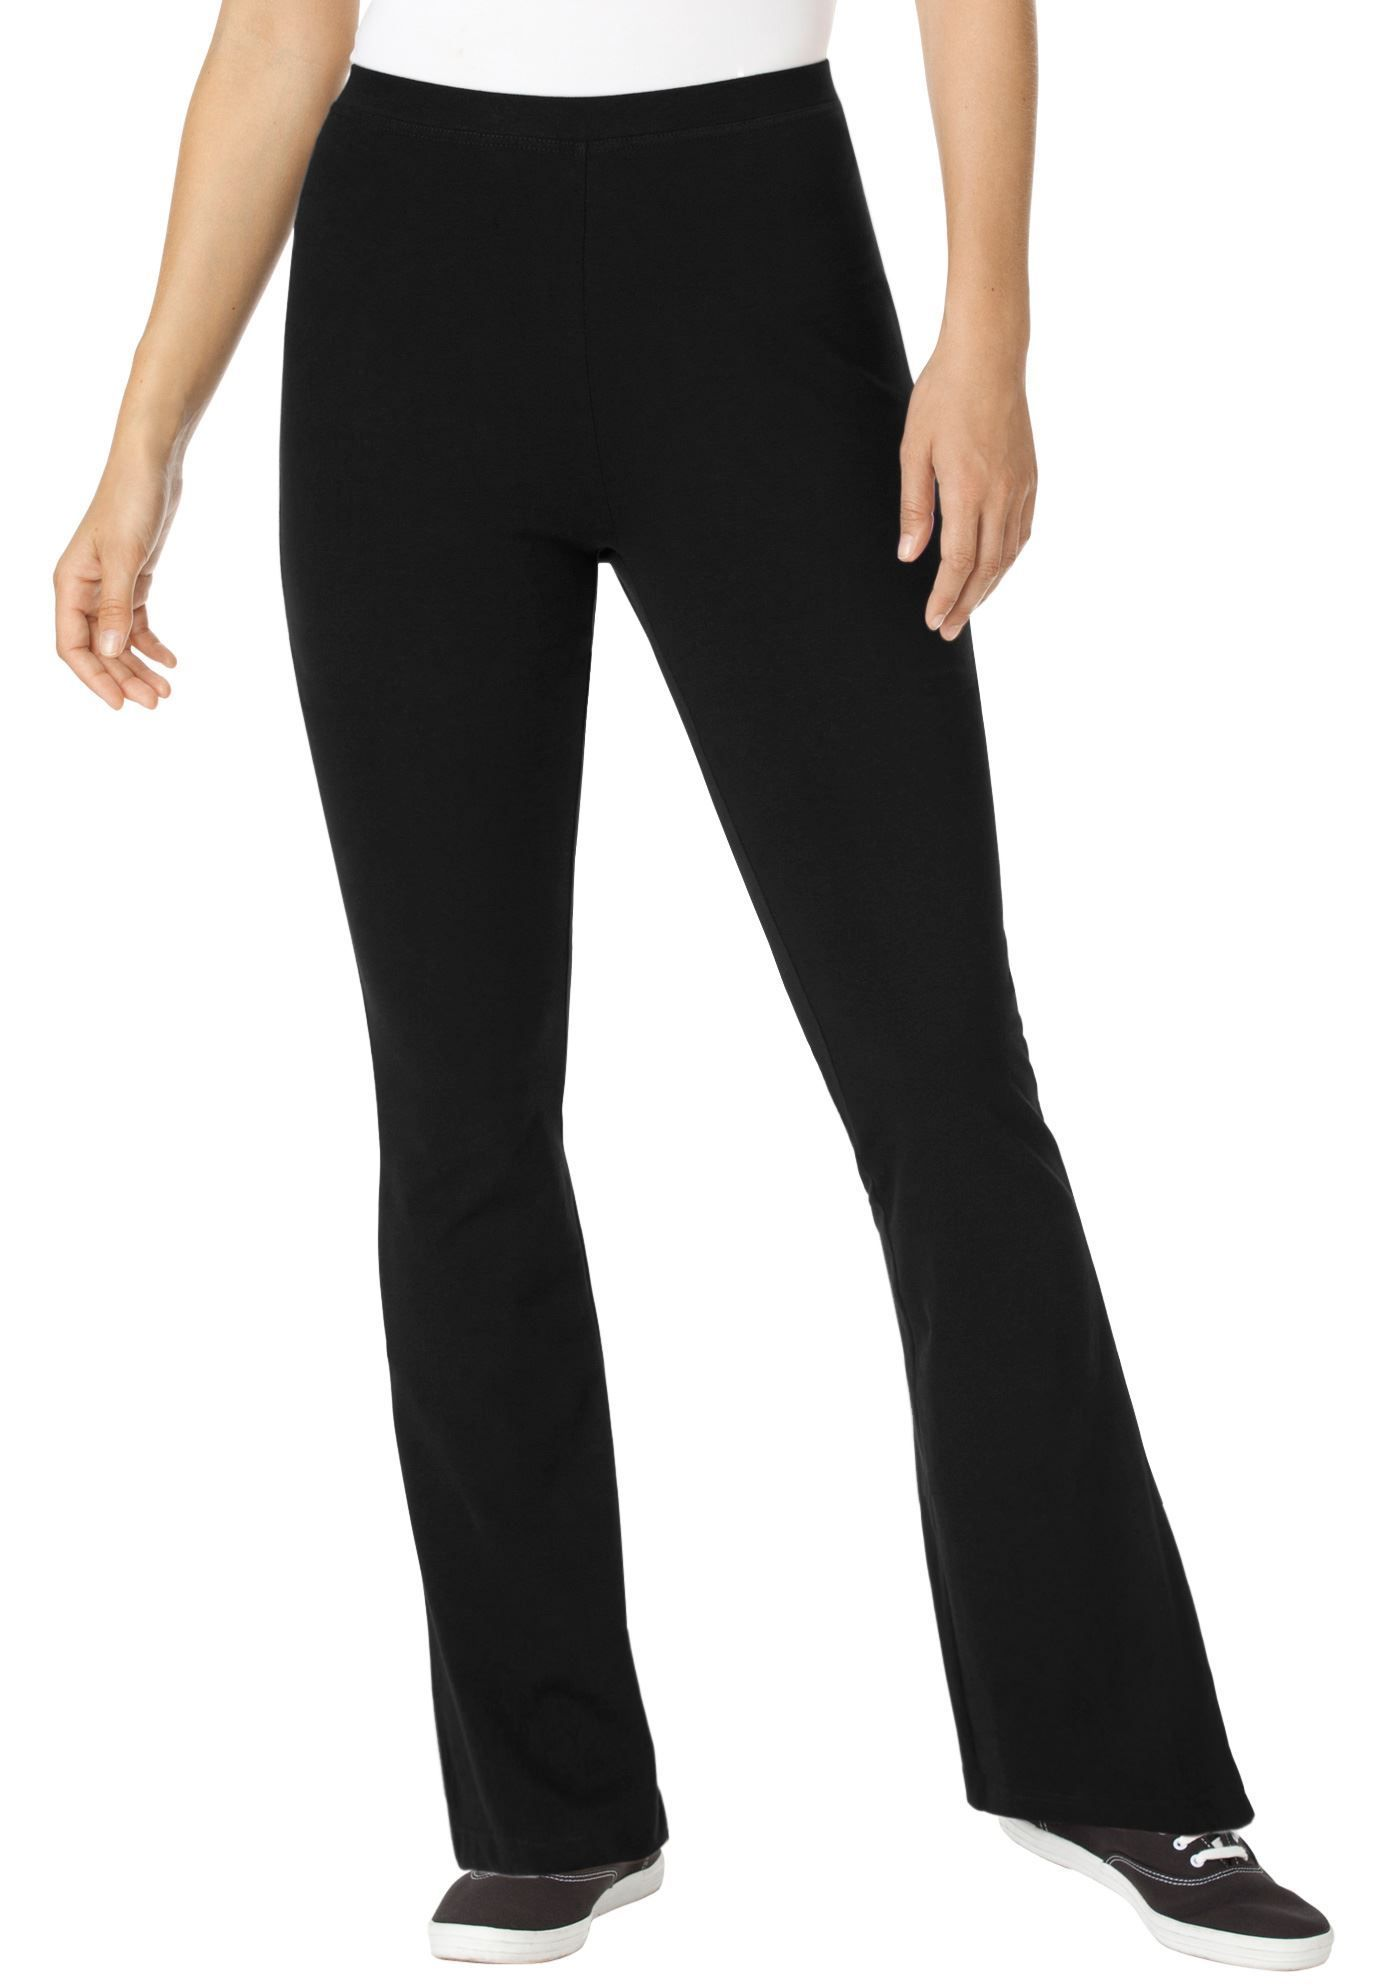 5583c5de210 These plus size yoga knitwear pants are a great